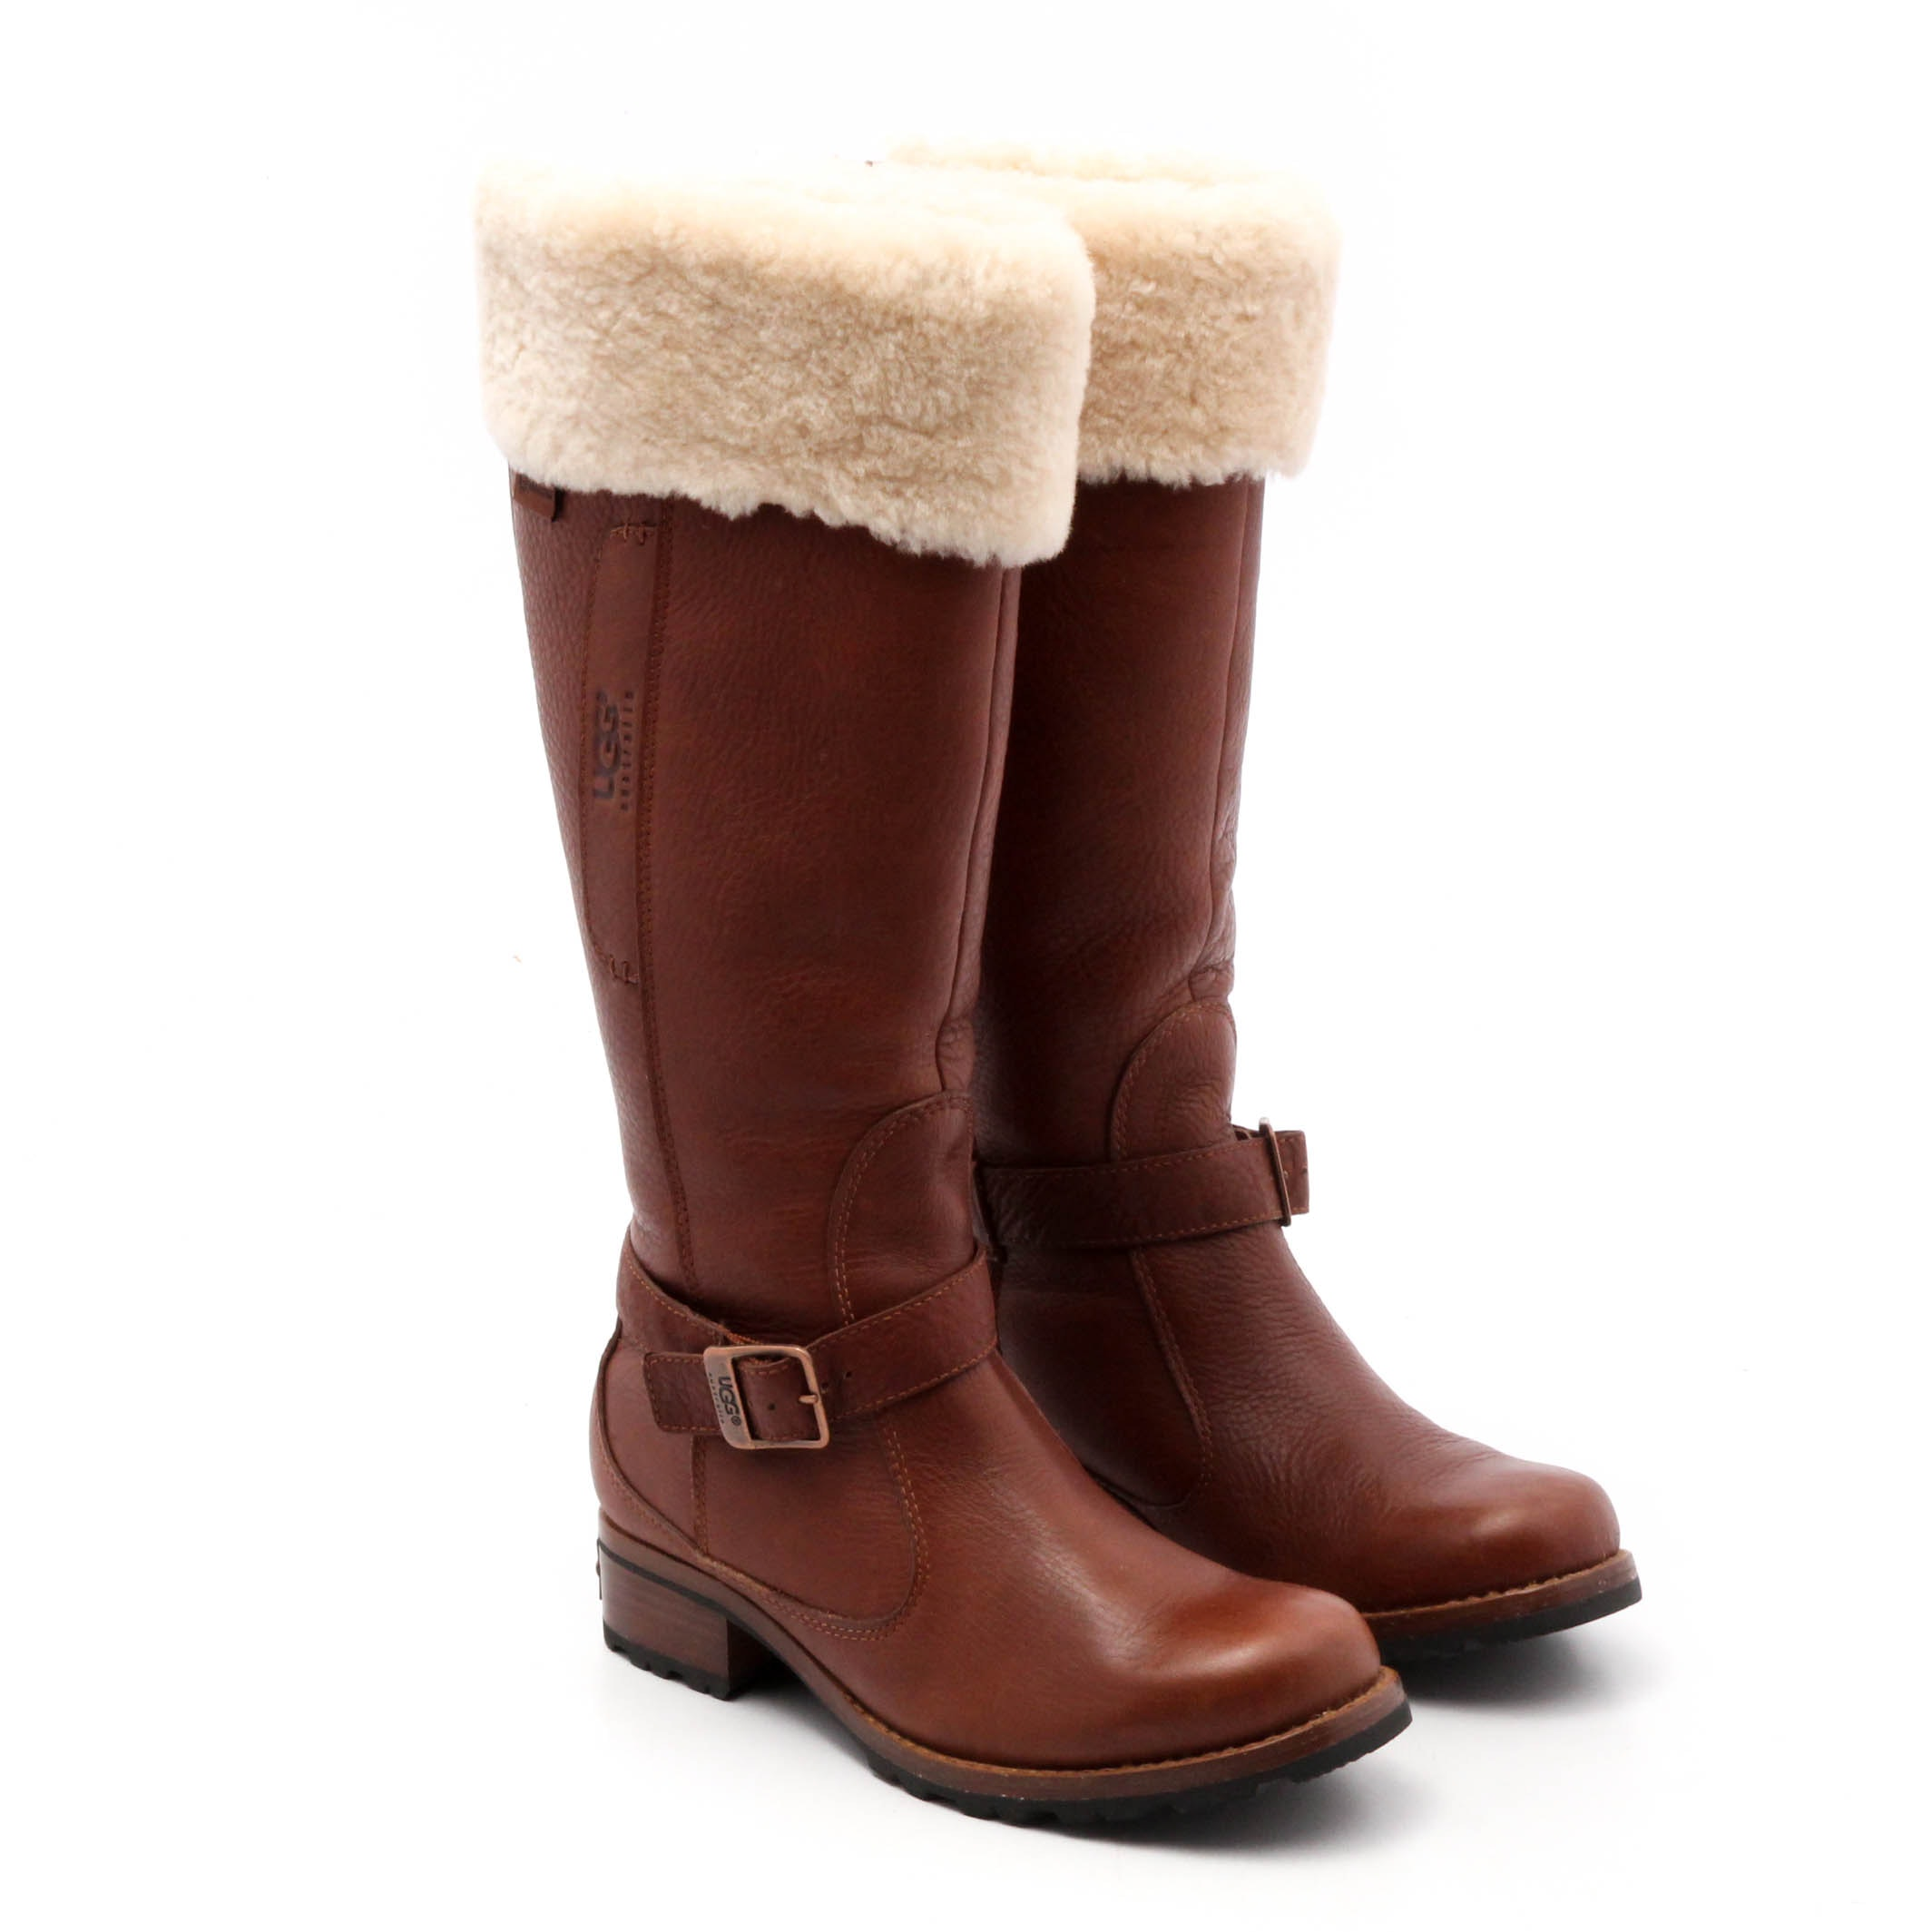 Women's UGG Australia Shearling Lined Pebbled Leather Boots